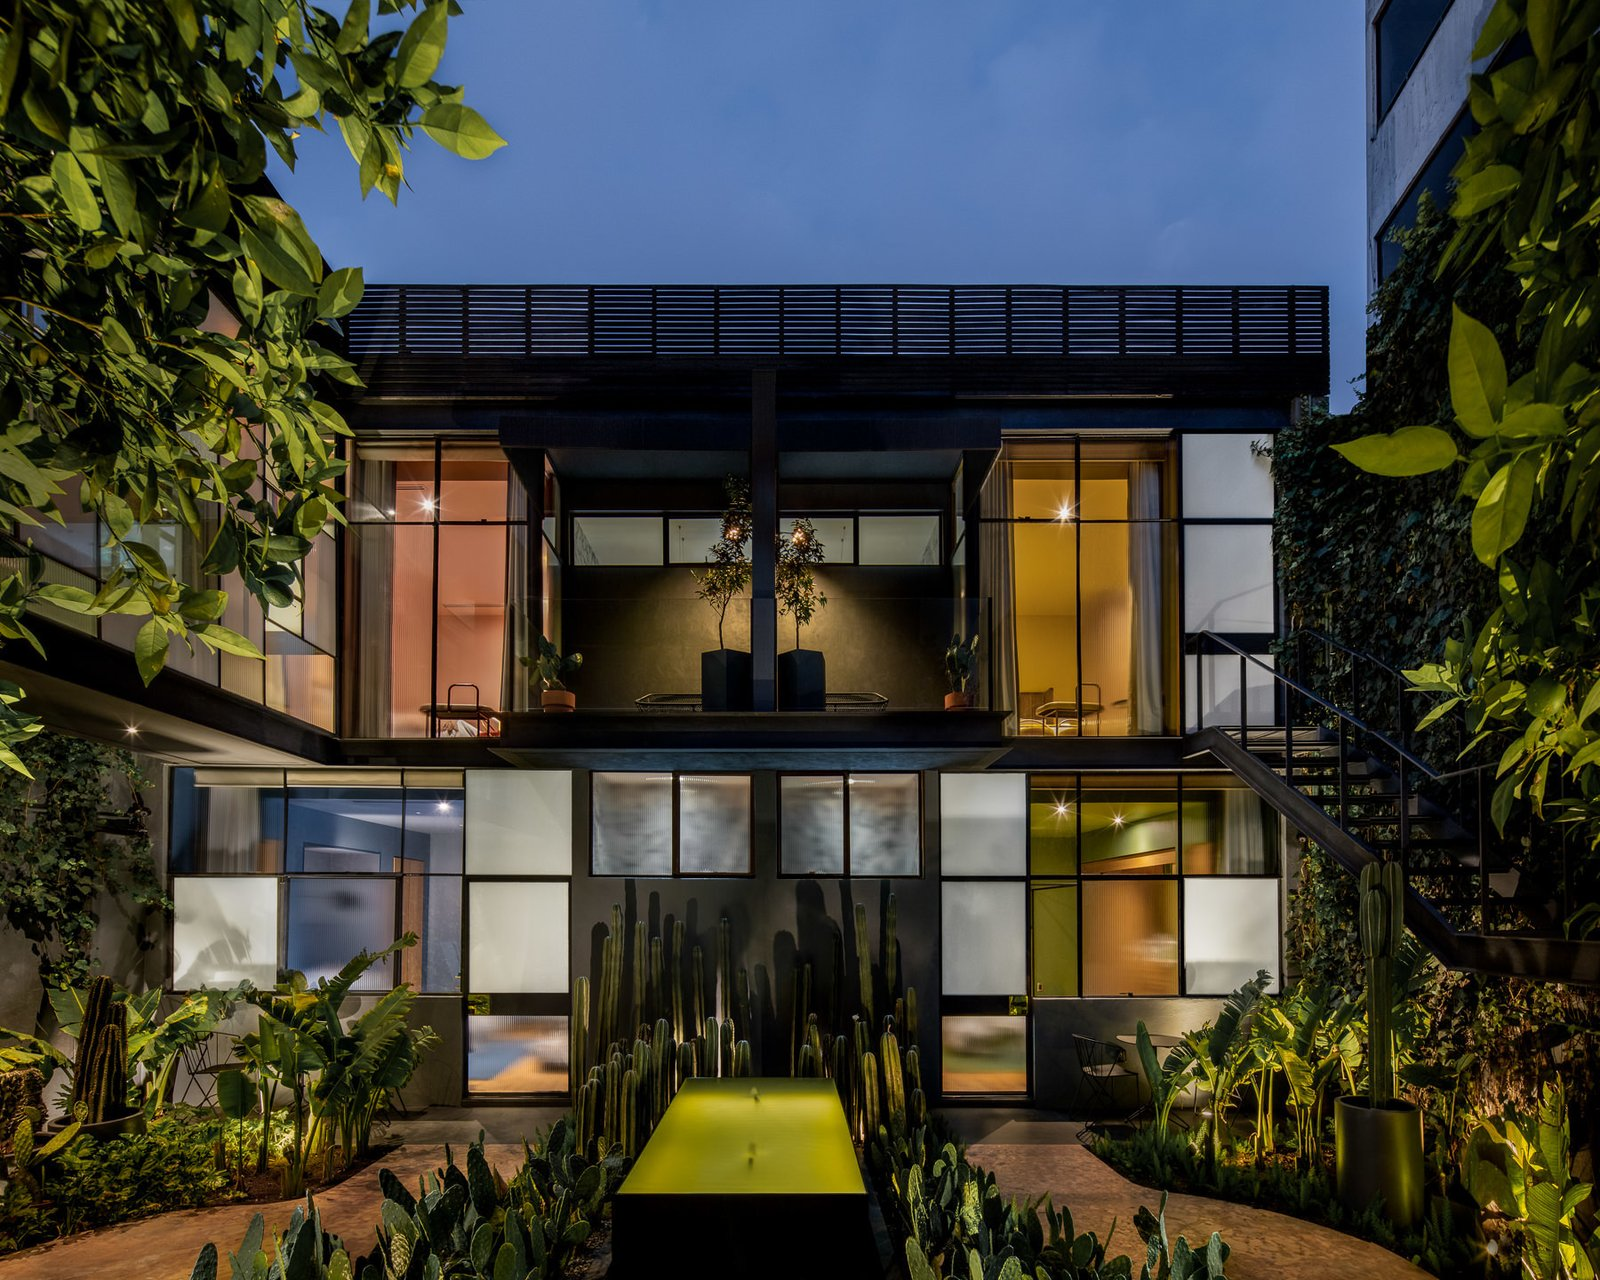 Photo 5 of 7 in Ignacia Guesthouse Balances Historic and Modern In Mexico City